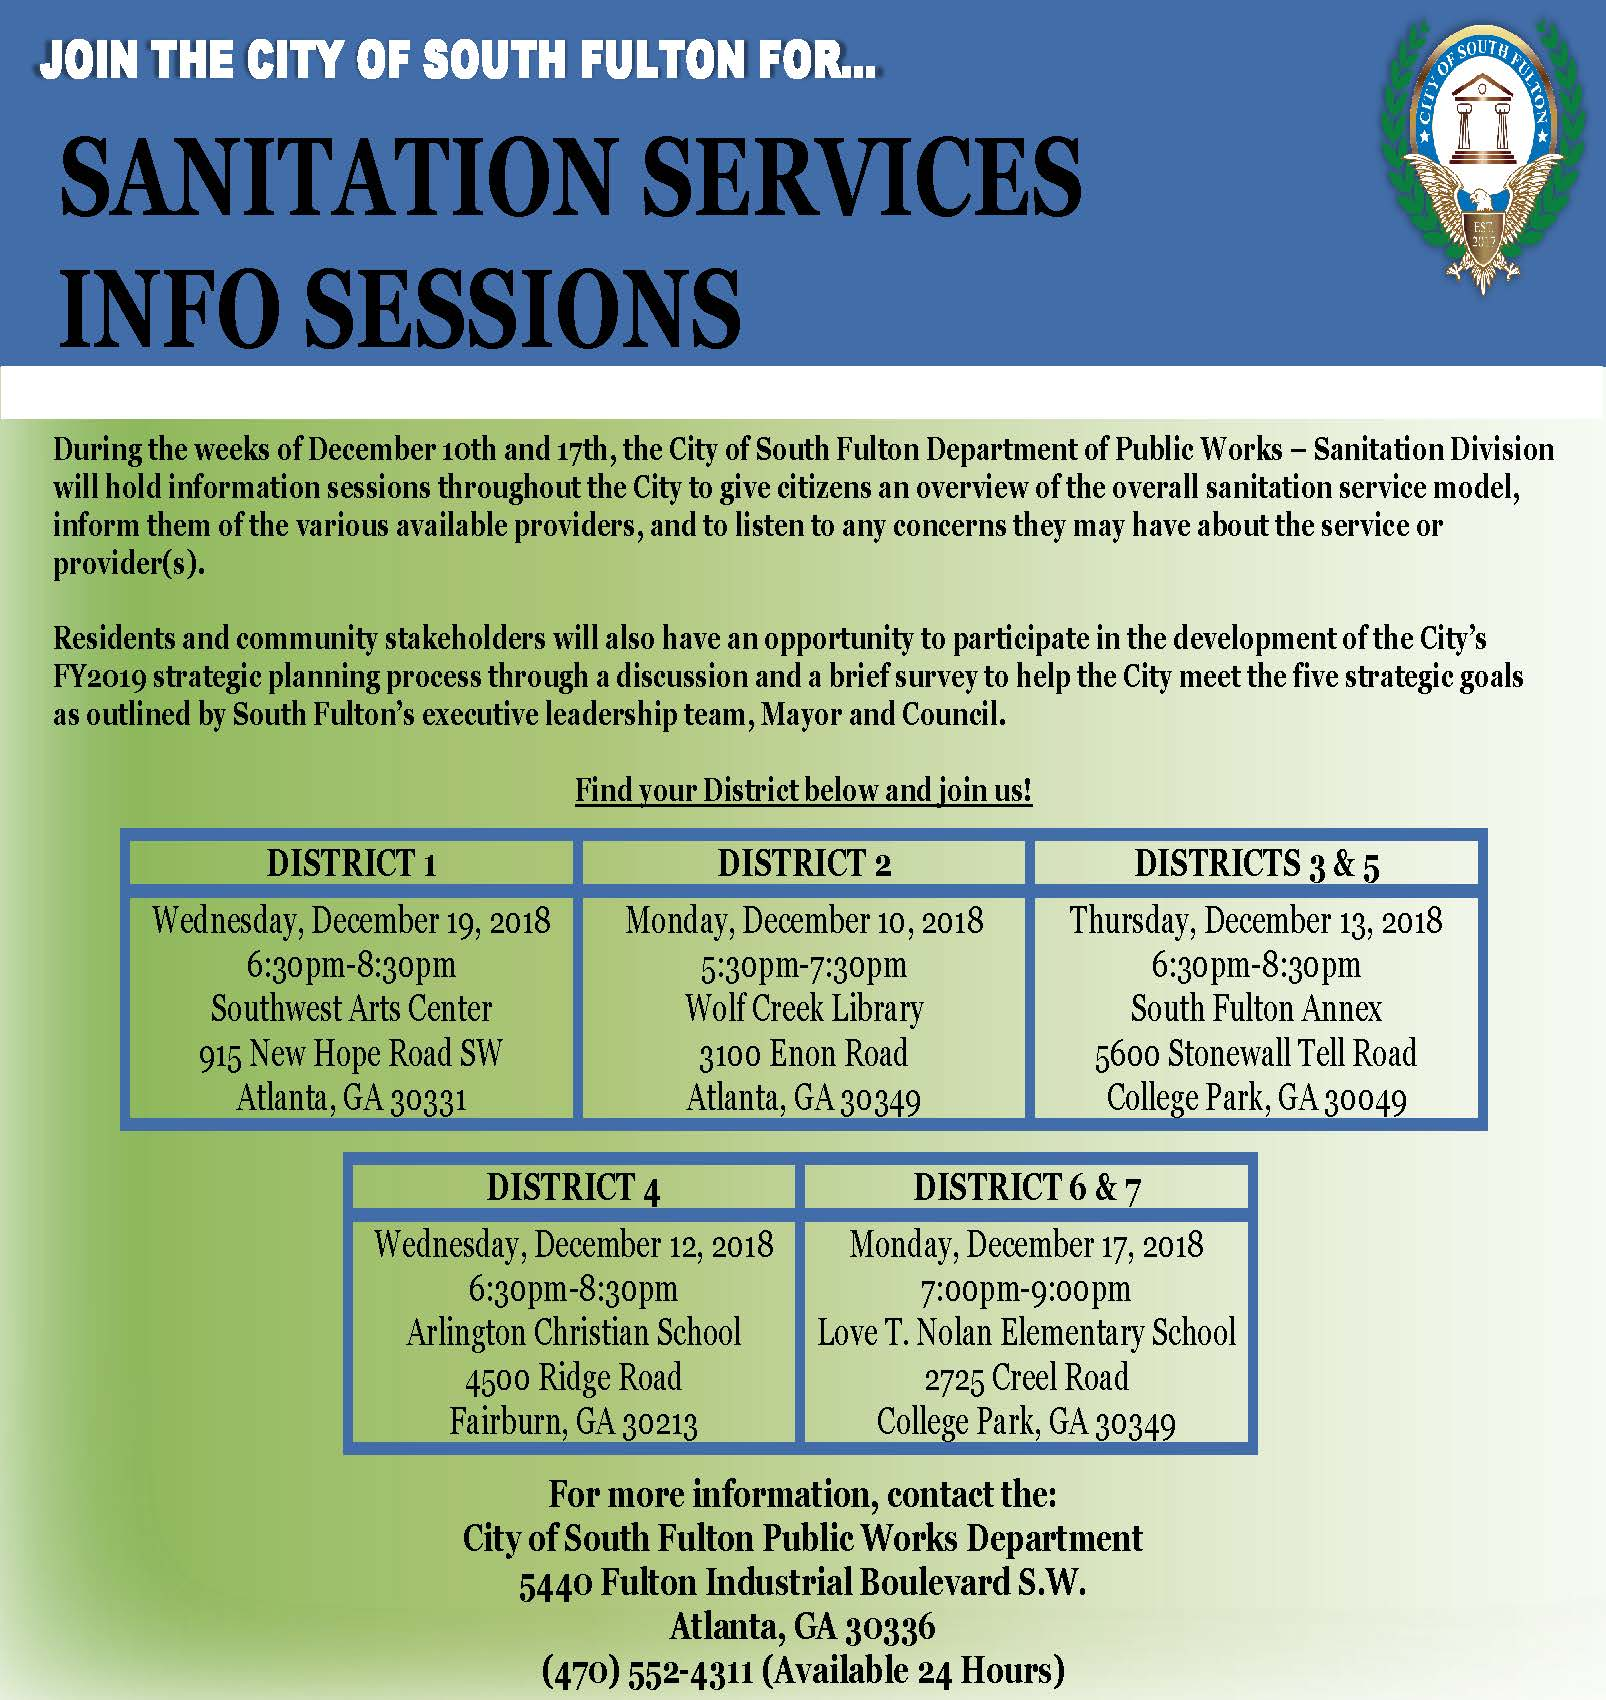 Sanitation Services Info Sessions Flyer